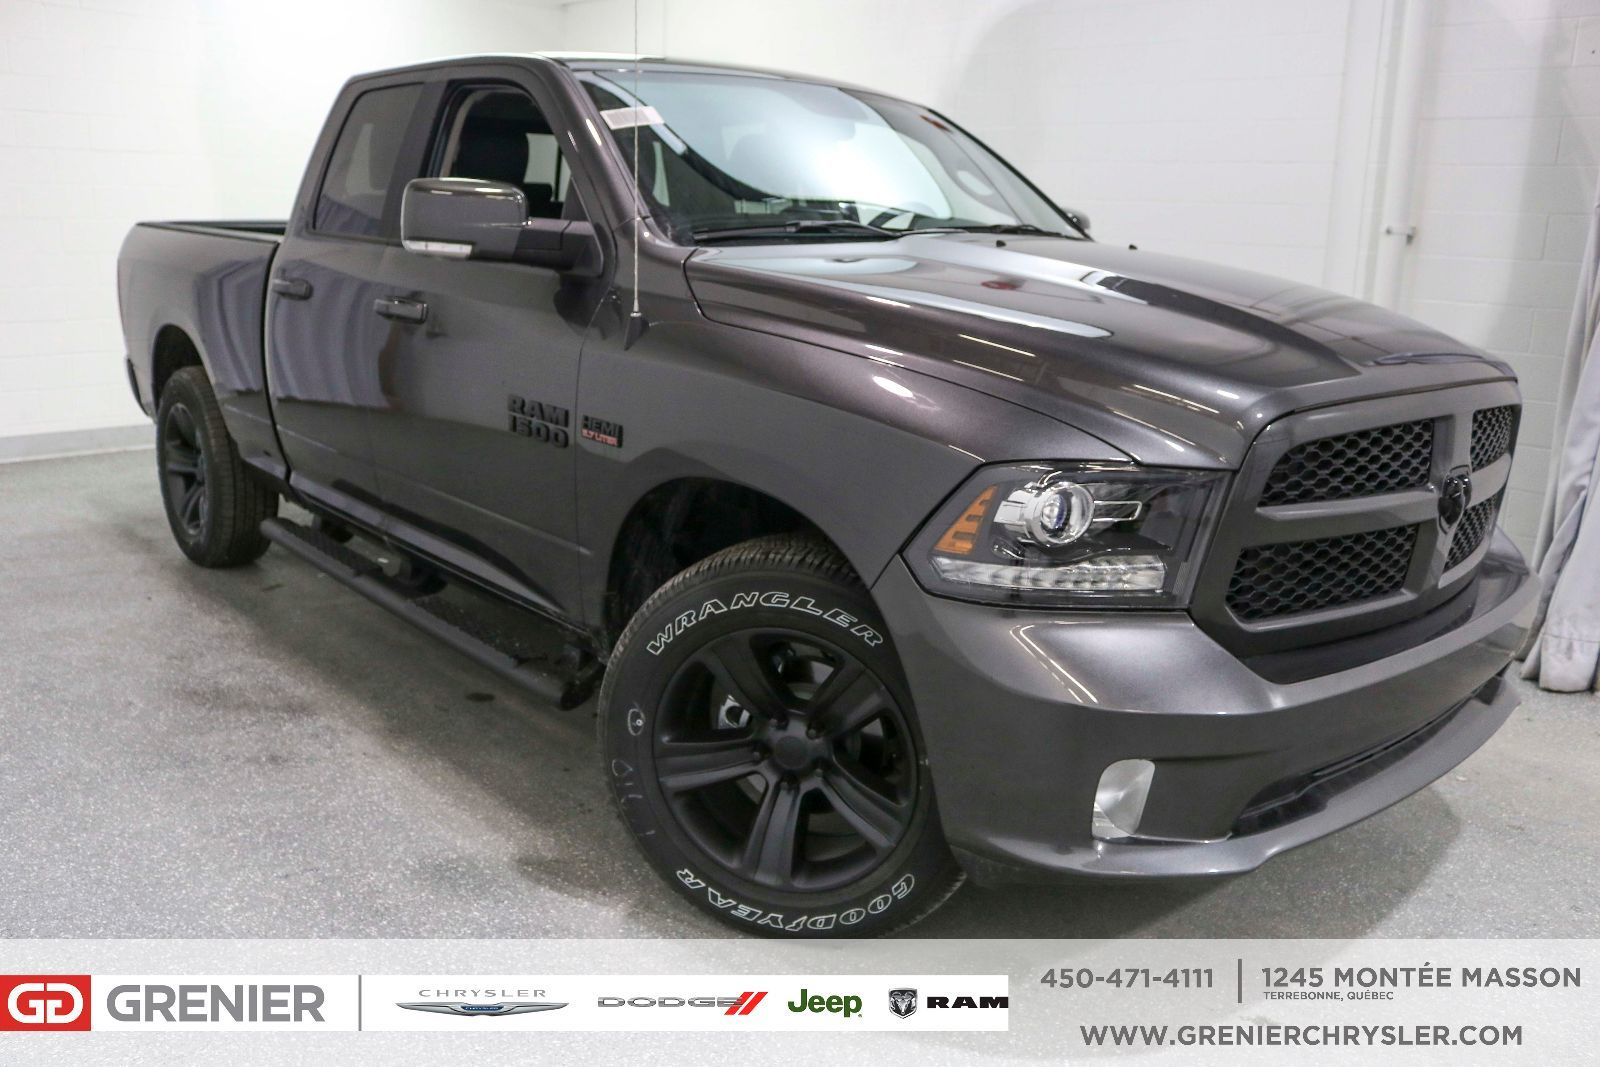 New 2017 Ram 1500 CUIR + BLUETOOTH + MARCHEPIEDS ET MAGS NOIR Grey - $39990.0 | Grenier Chrysler ...